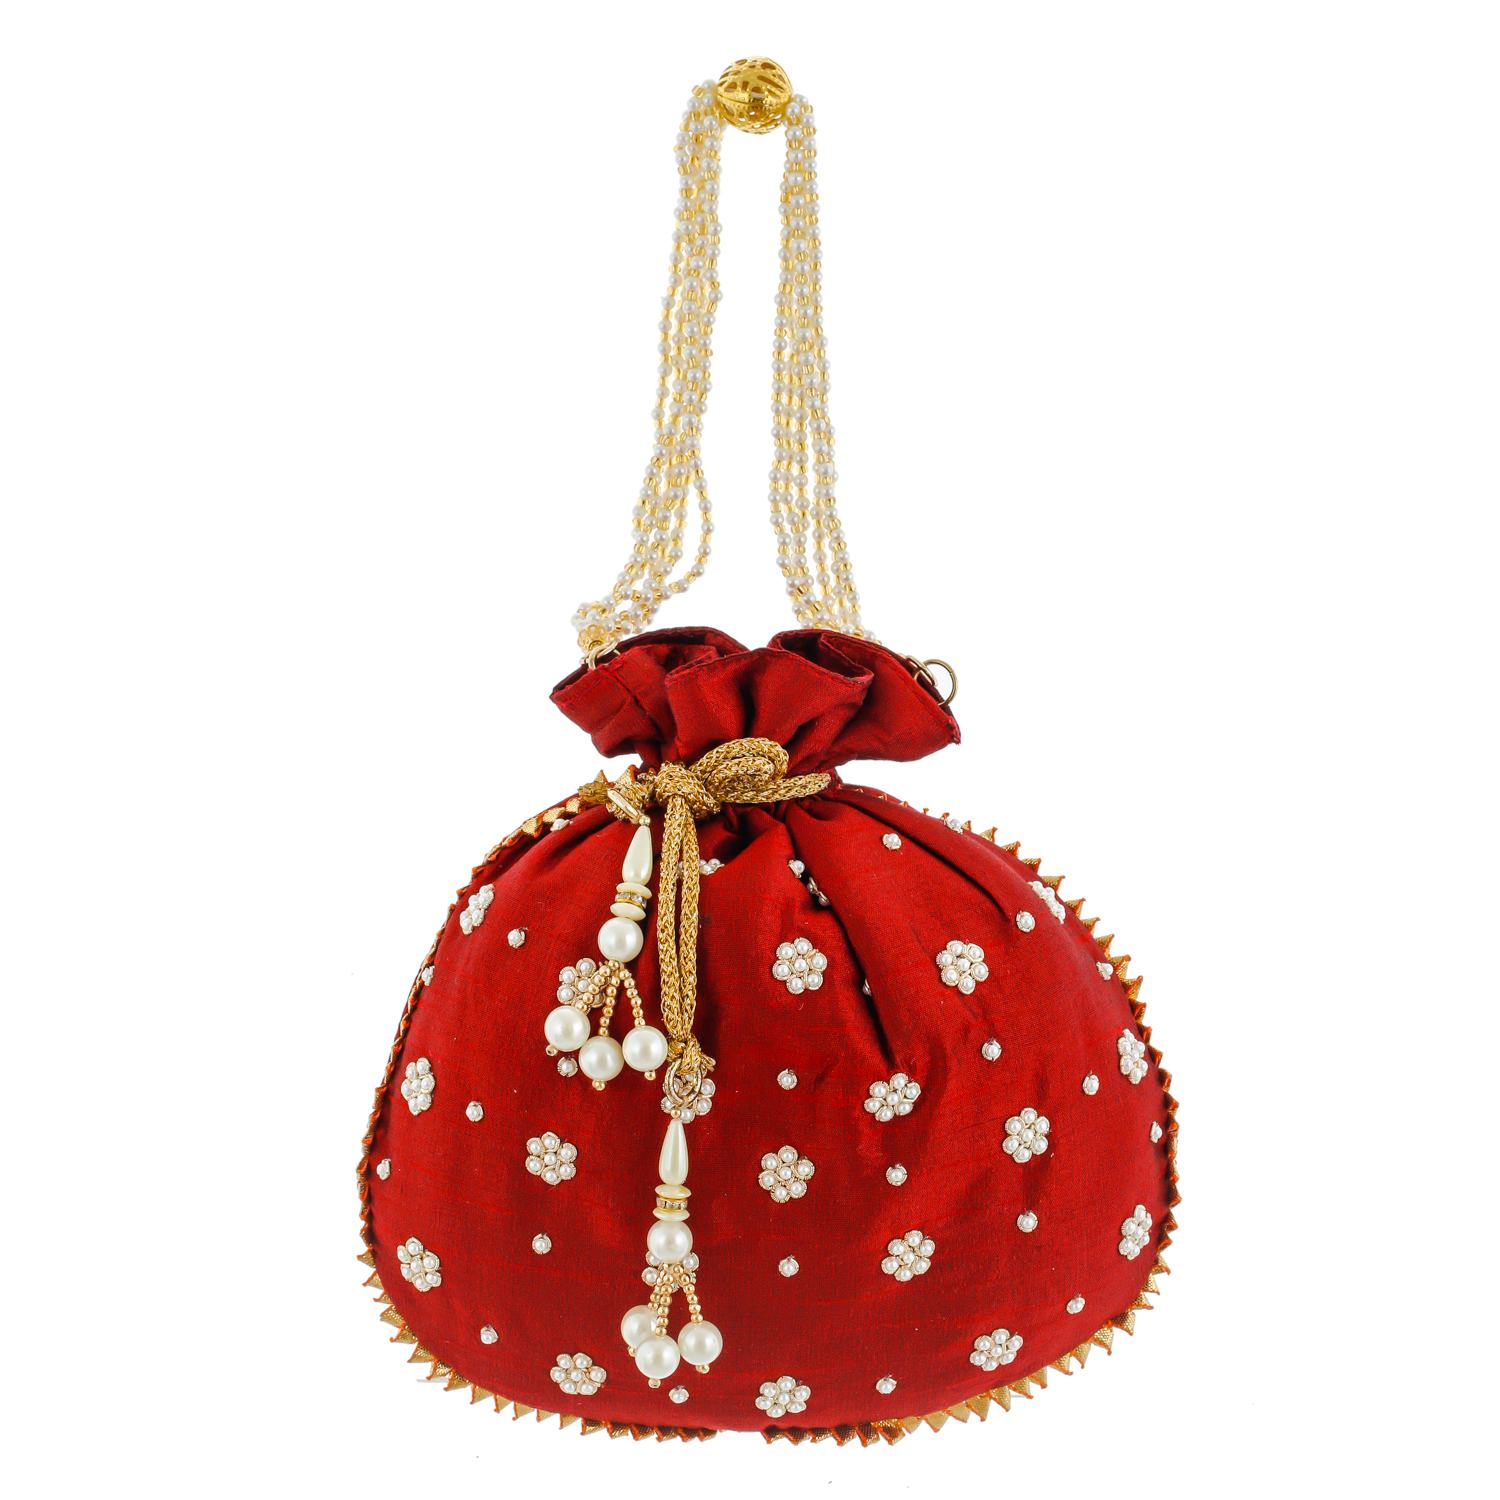 Kuber Industries Ethnic Clutch Silk 2 Pieces Potli Batwa Pouch Bag with Beadwork Gift For Women (Maroon & Gold) - CTKTC23107